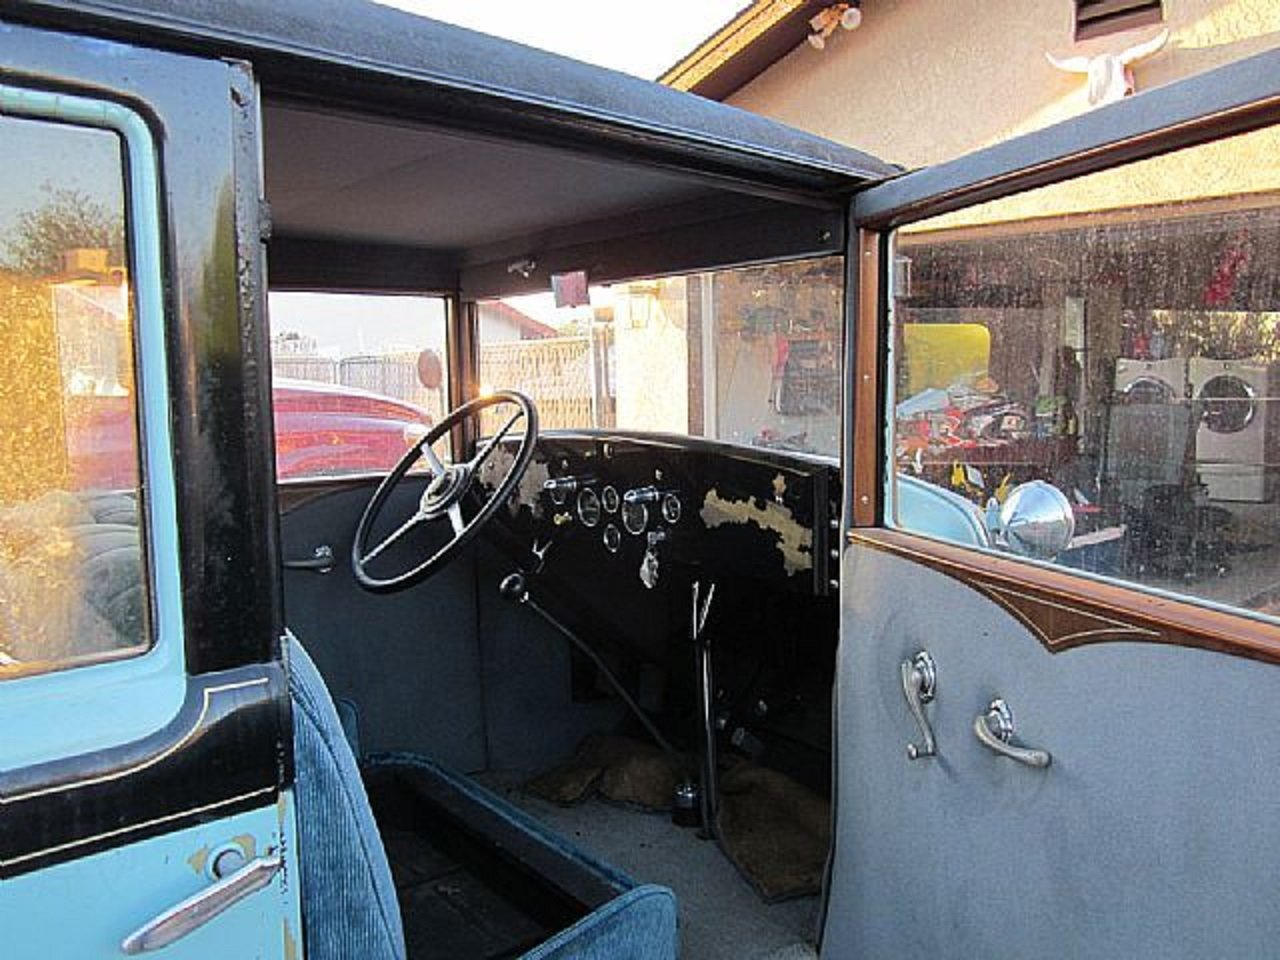 1928 LaSalle 4DR Sedan For Sale (picture 5 of 6)